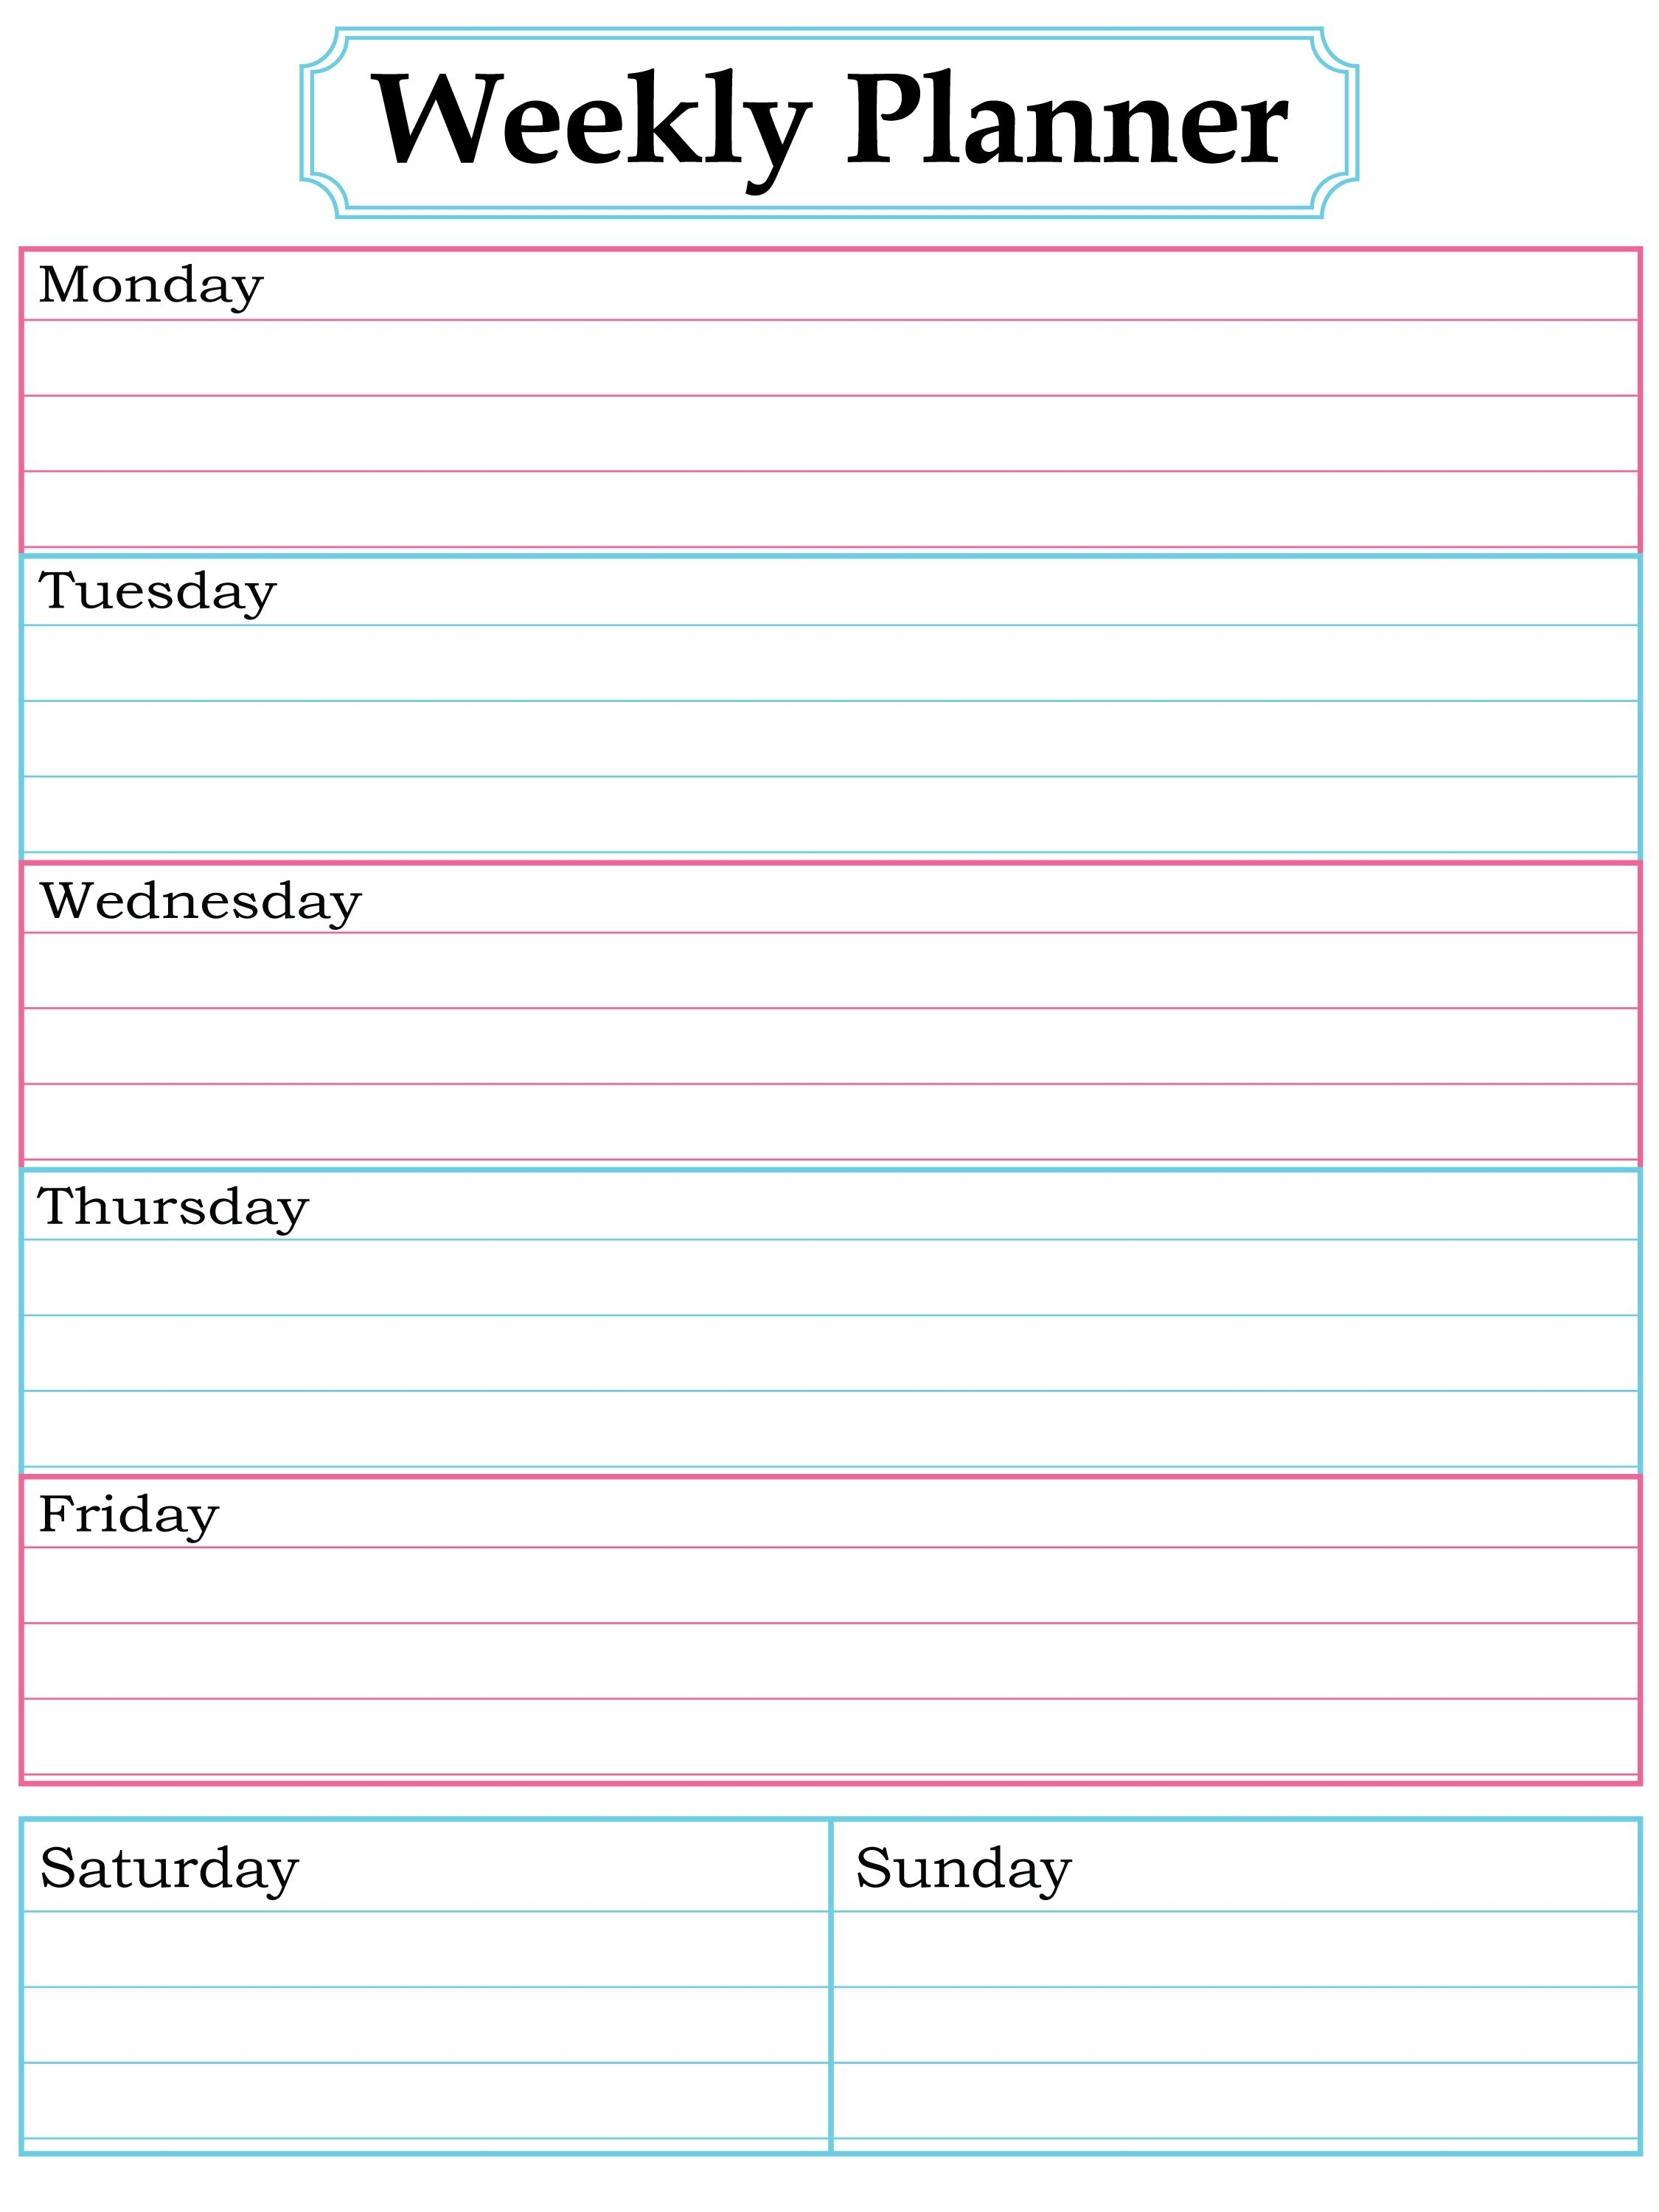 Weekly planner printable nice simple clean lines for Free online room planner no download